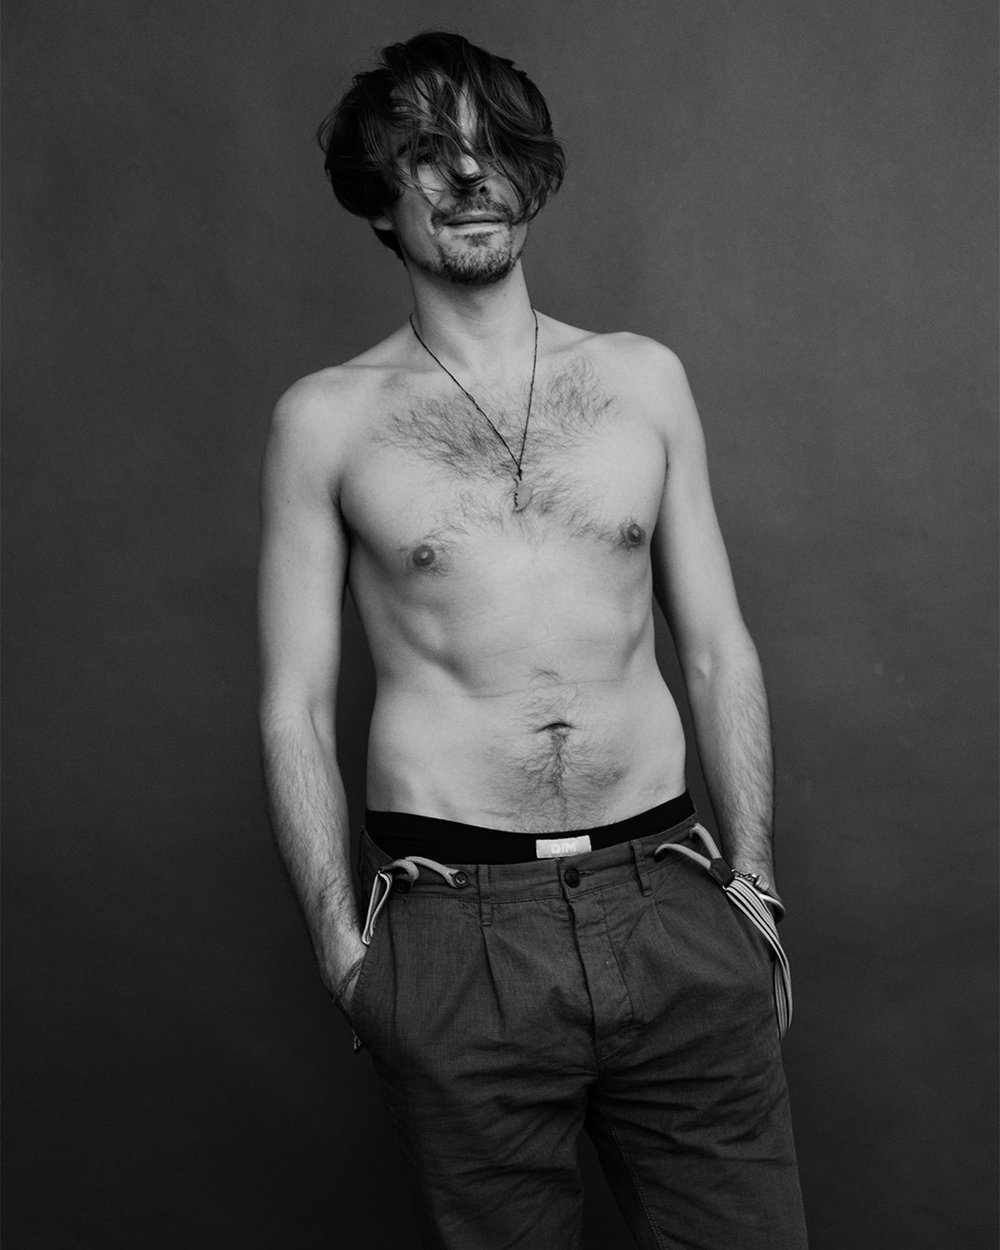 Edward Akrout photographed by Patrik Andersson in Brooklyn New York